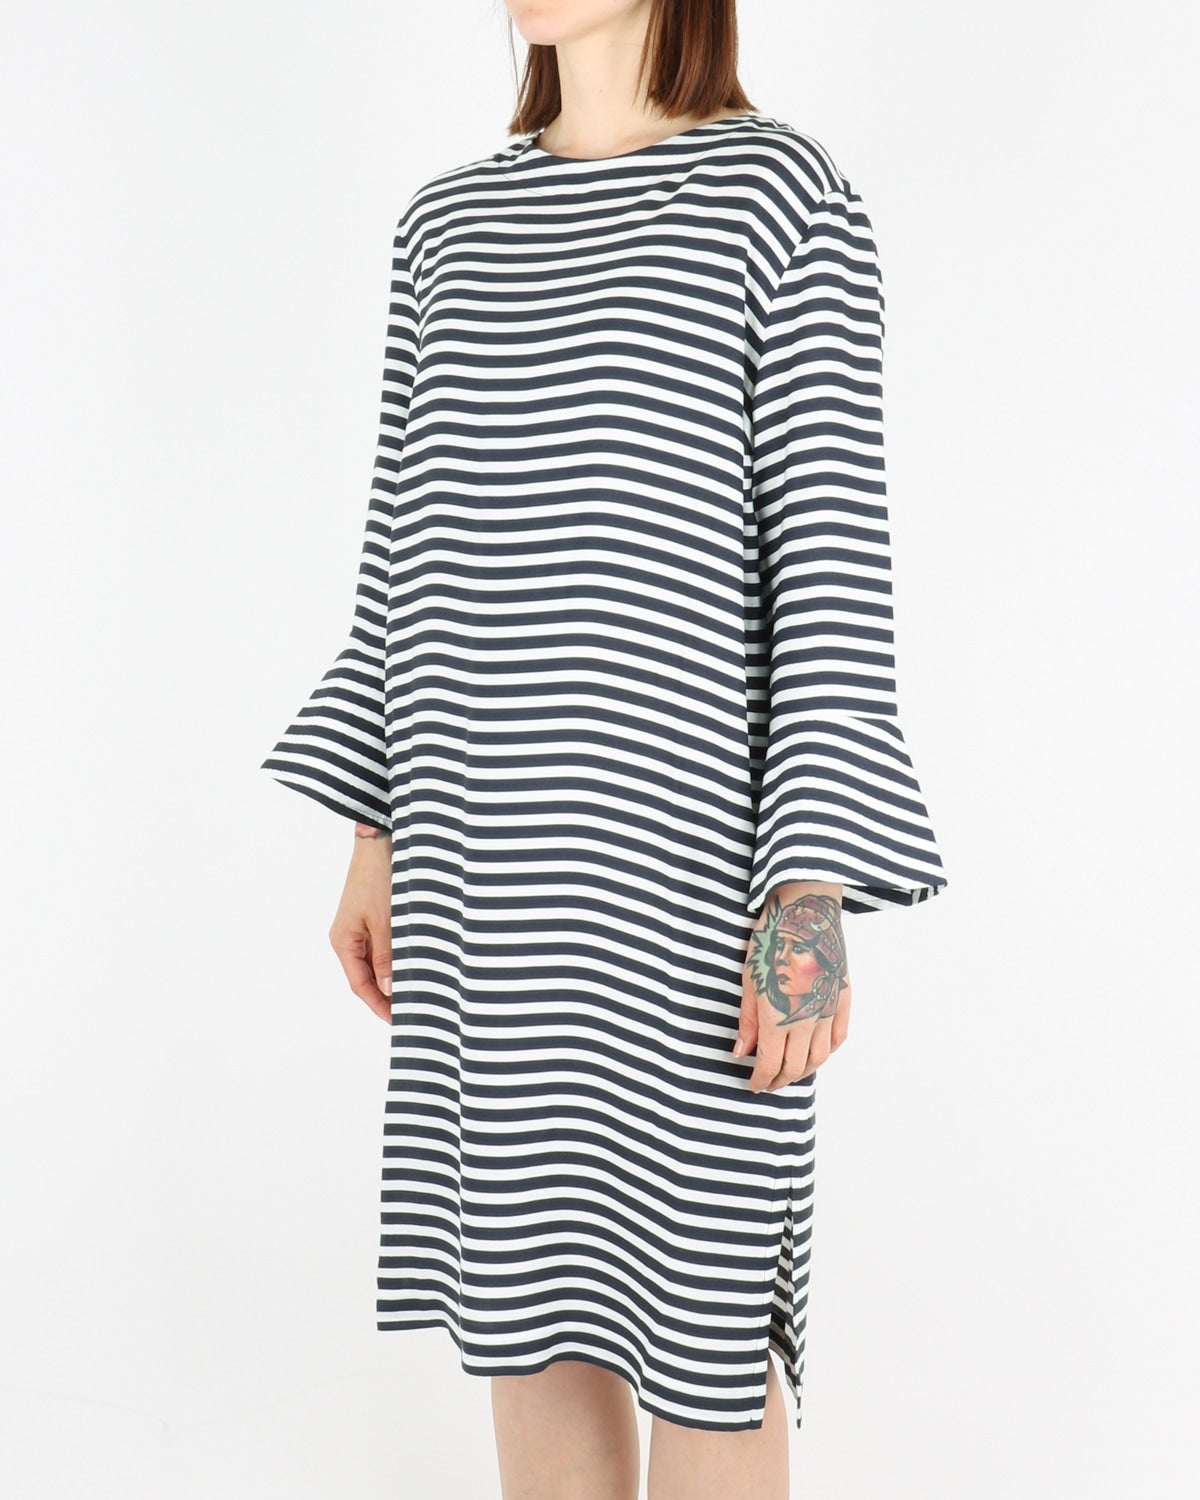 libertine libertine_glaze dress_navy white_view_2_3